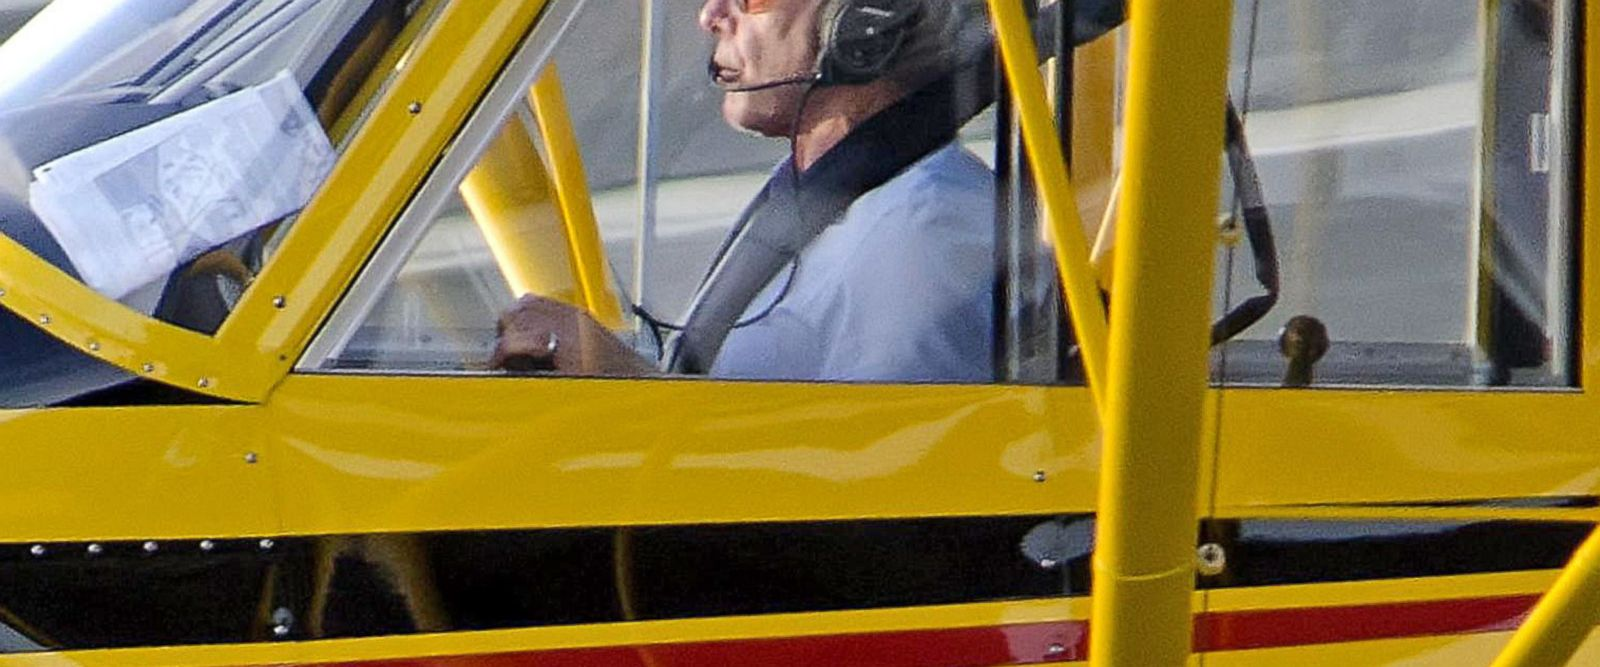 VIDEO: Video shows Harrison Ford's near-collision with 747 jetliner